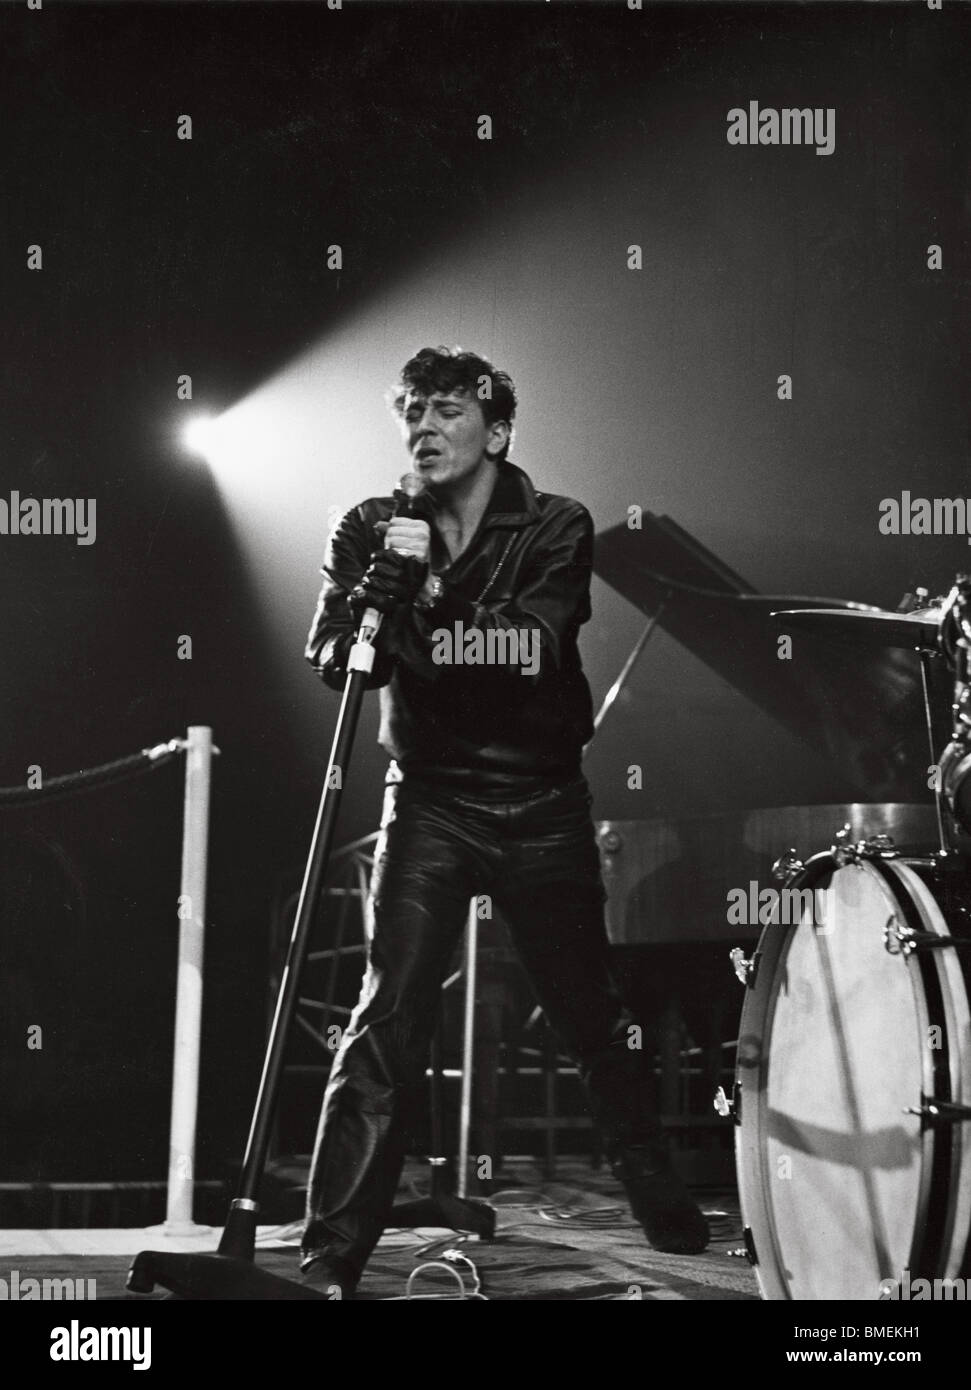 Gene Vincent Stock Photos Amp Gene Vincent Stock Images Alamy